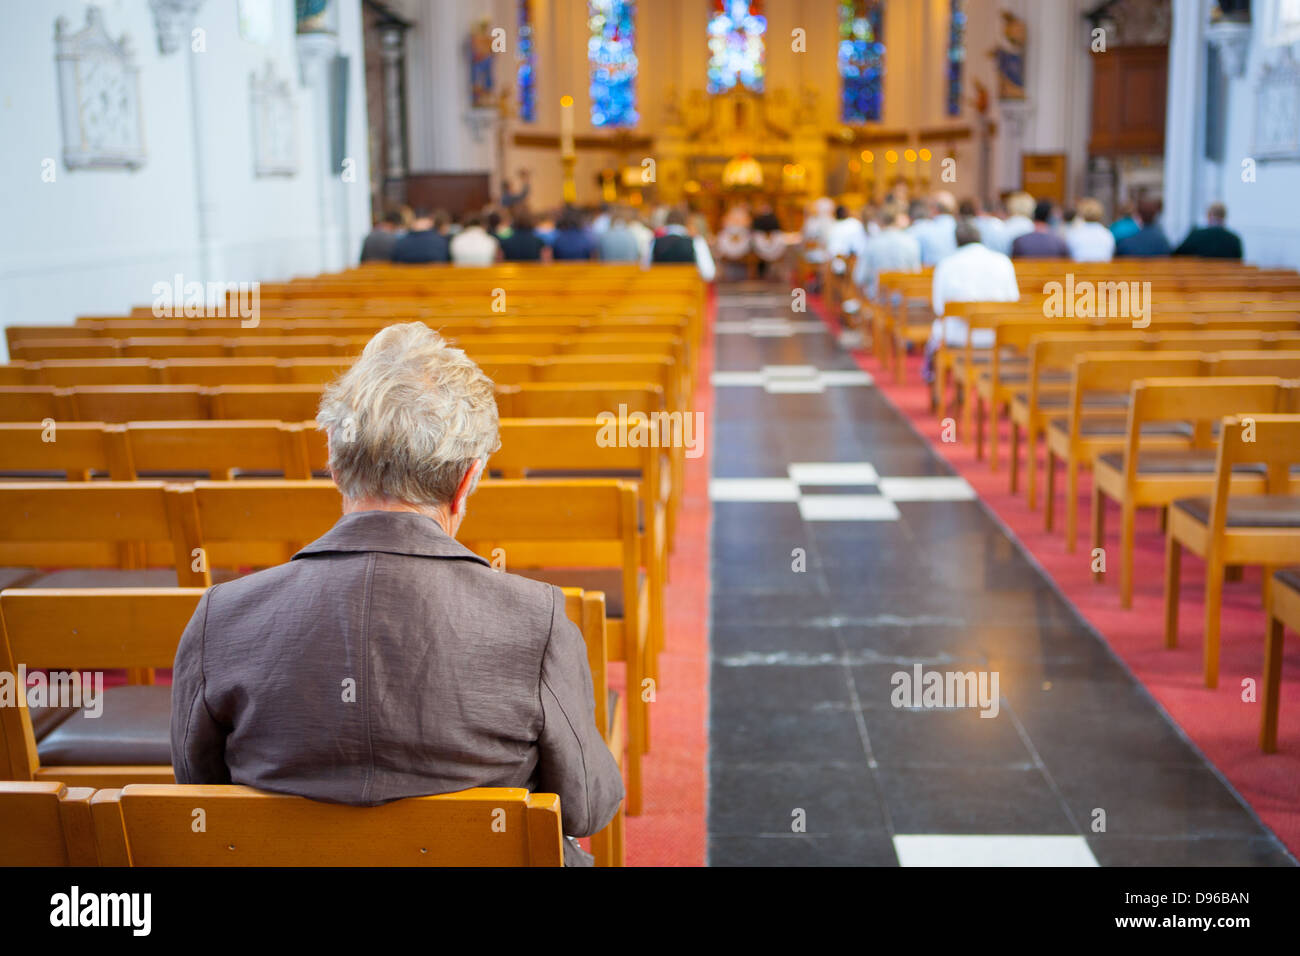 People Sitting And Praying Inside A Christian Church In